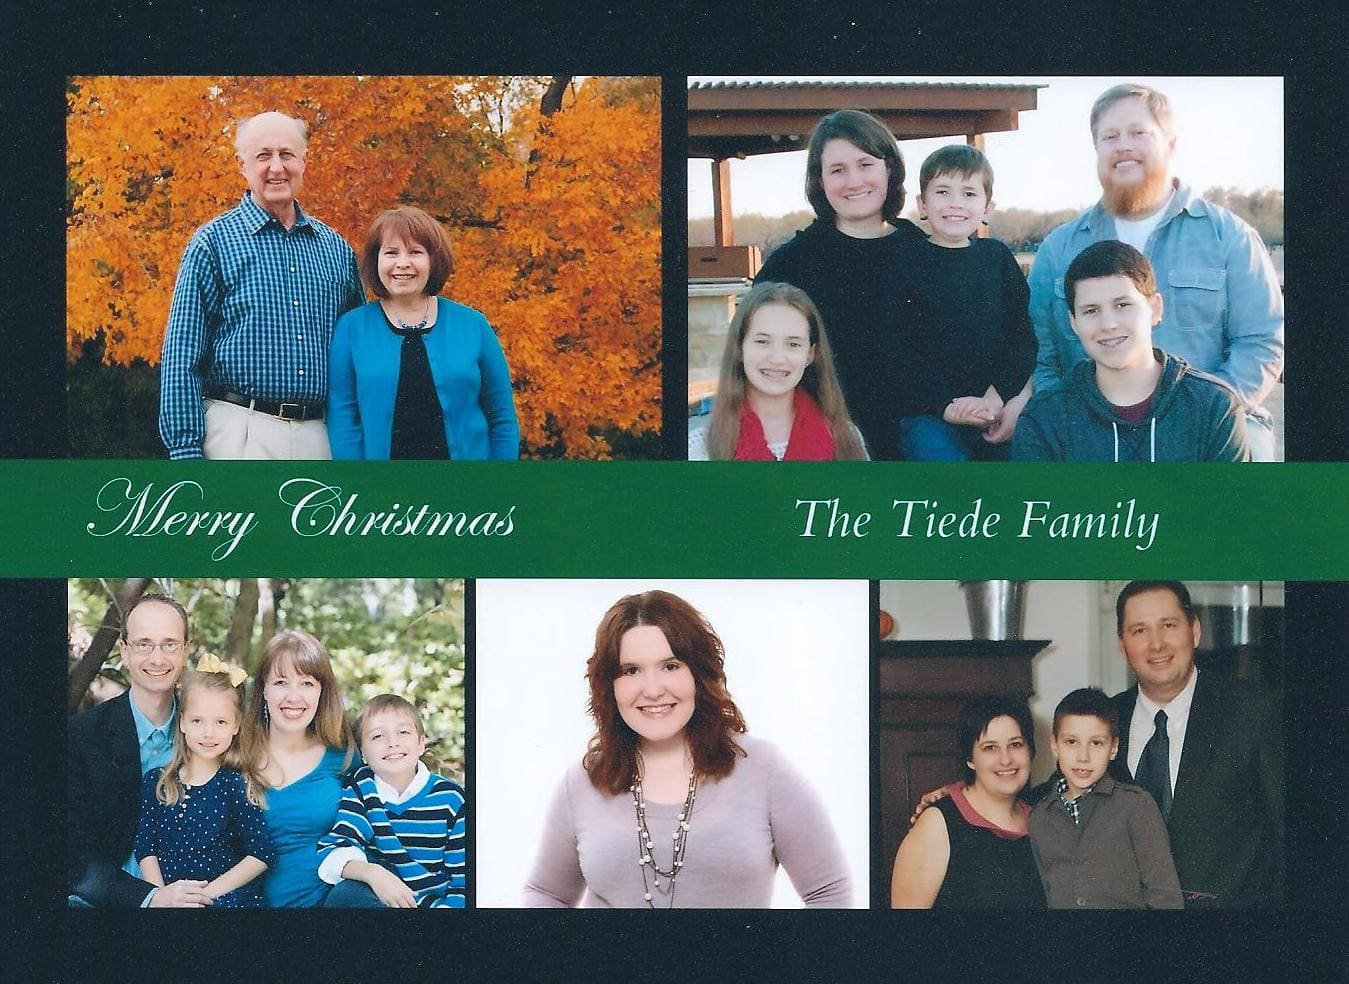 Tiede Family 2013 Christmas